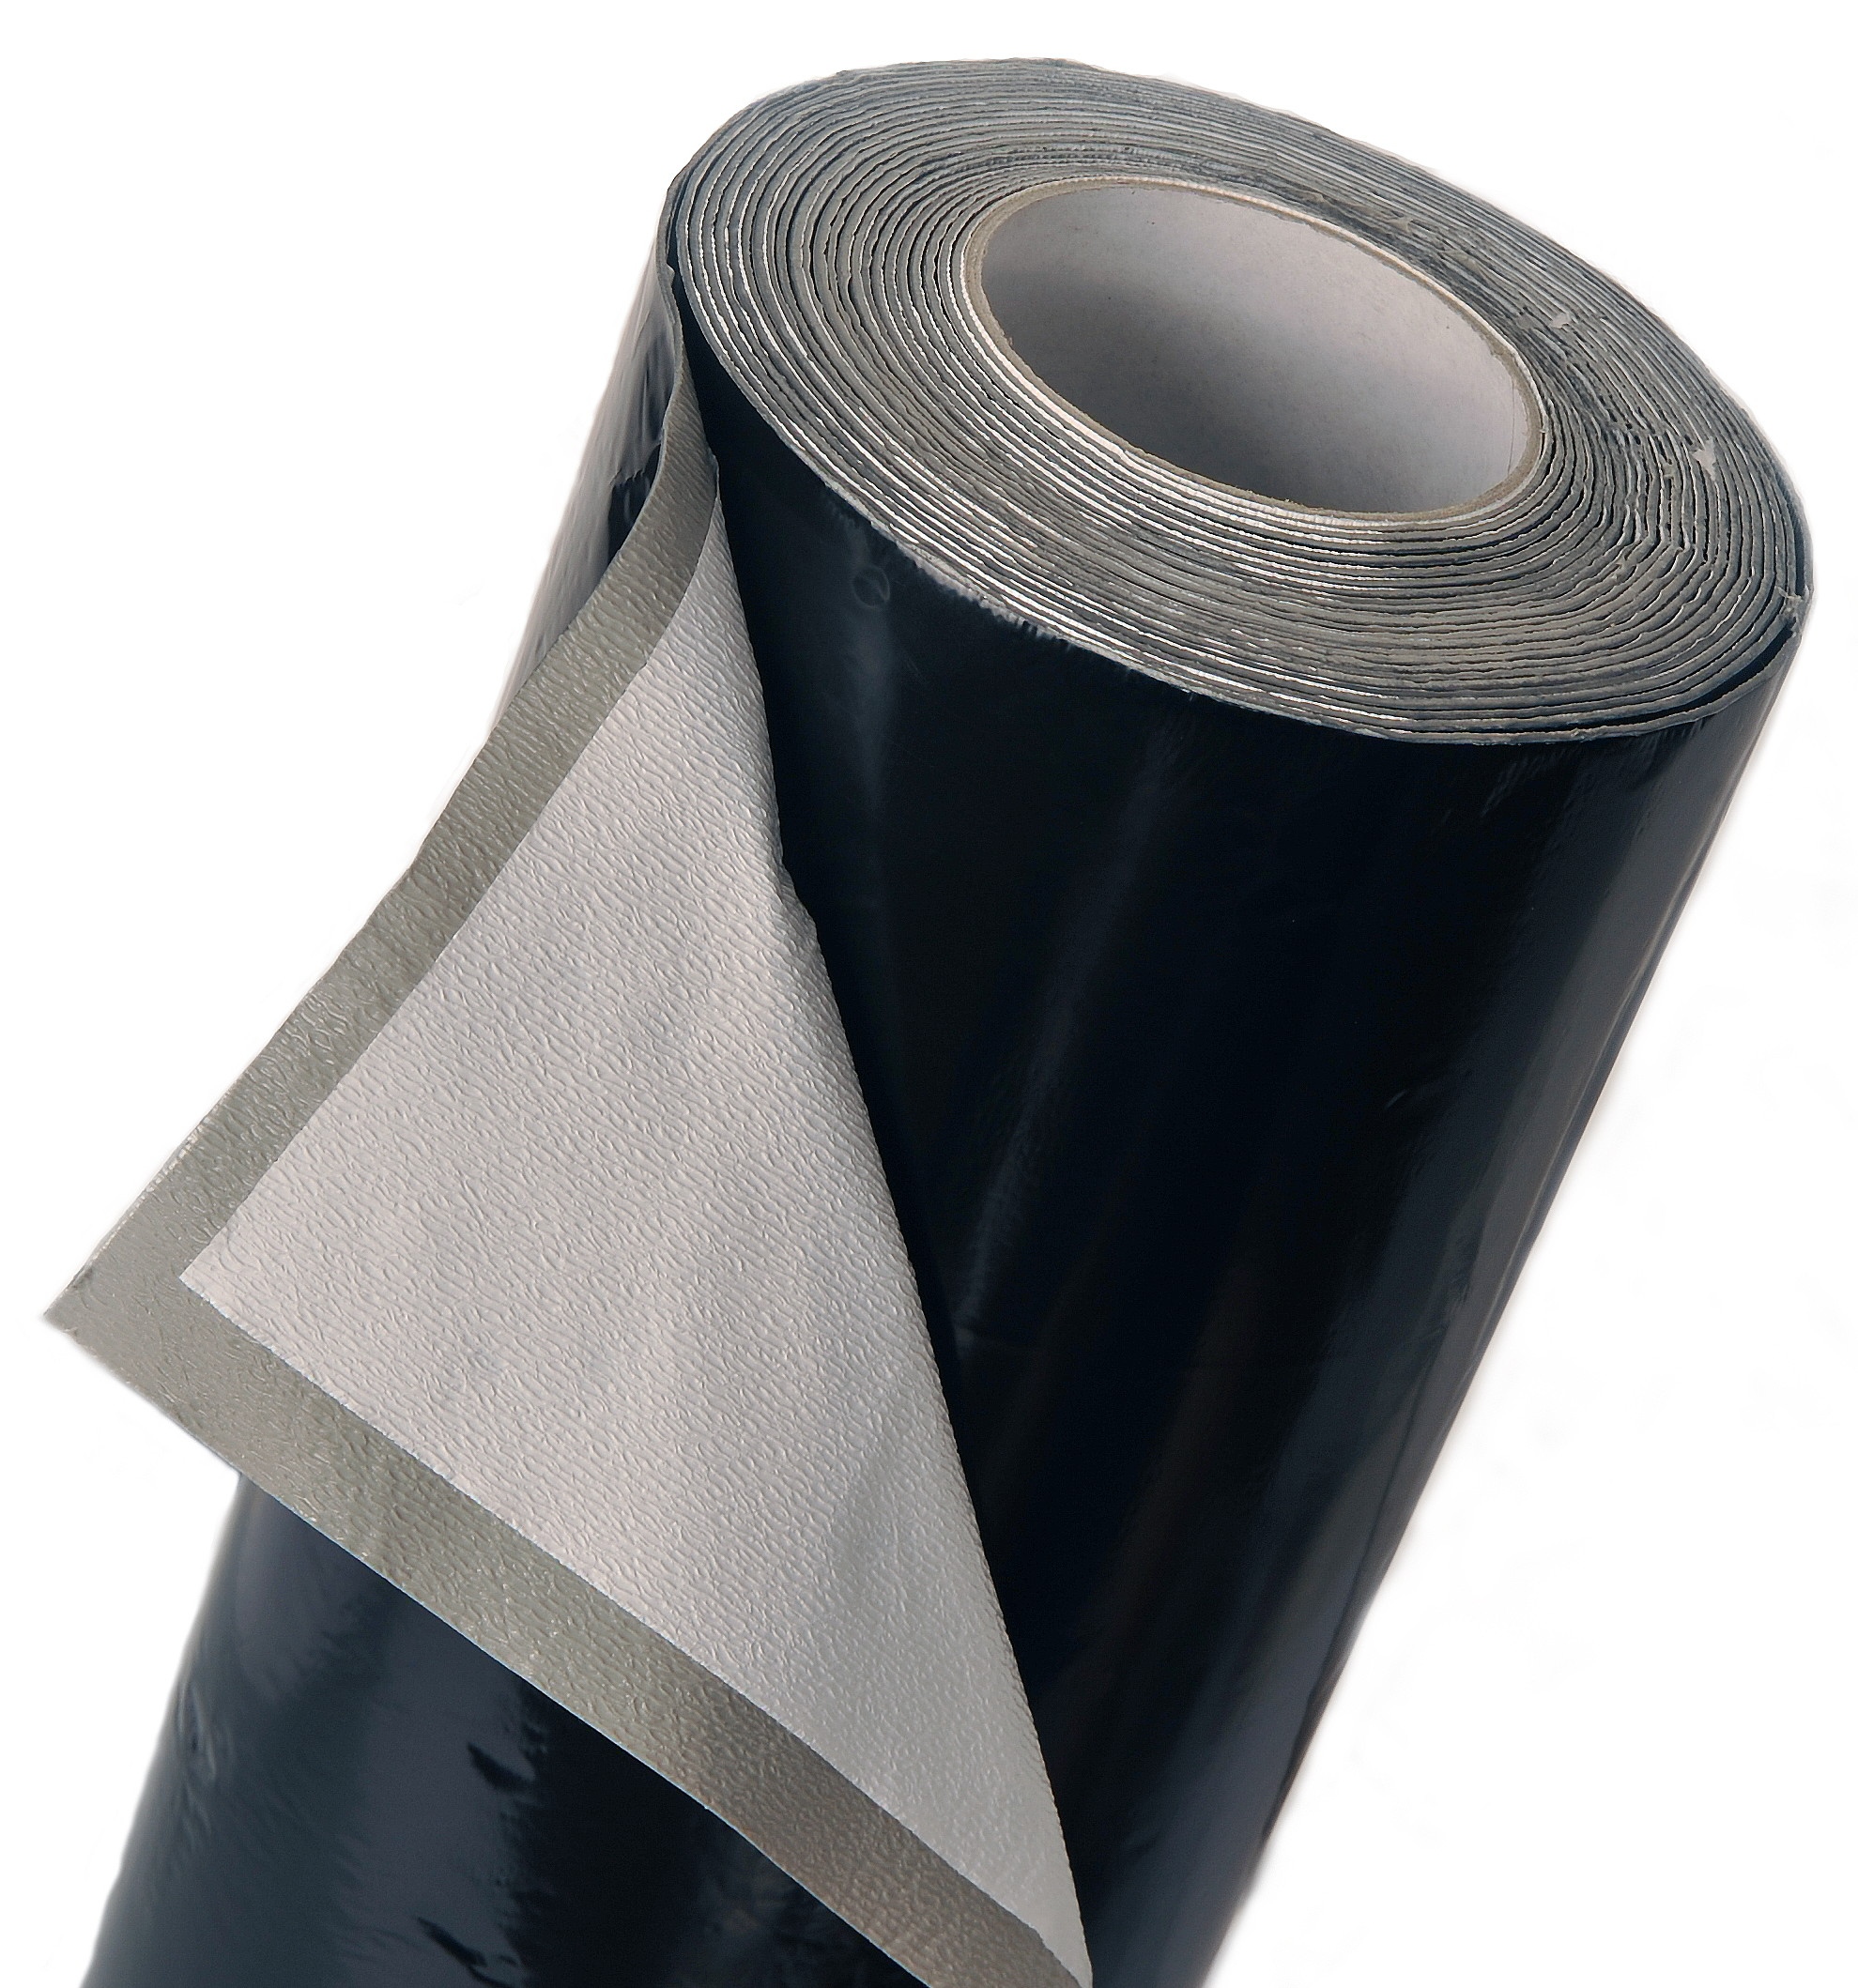 FatMat 50 mil Self-Adhesive Sound Deadener 2-12 Inch Rolls With Install Kit